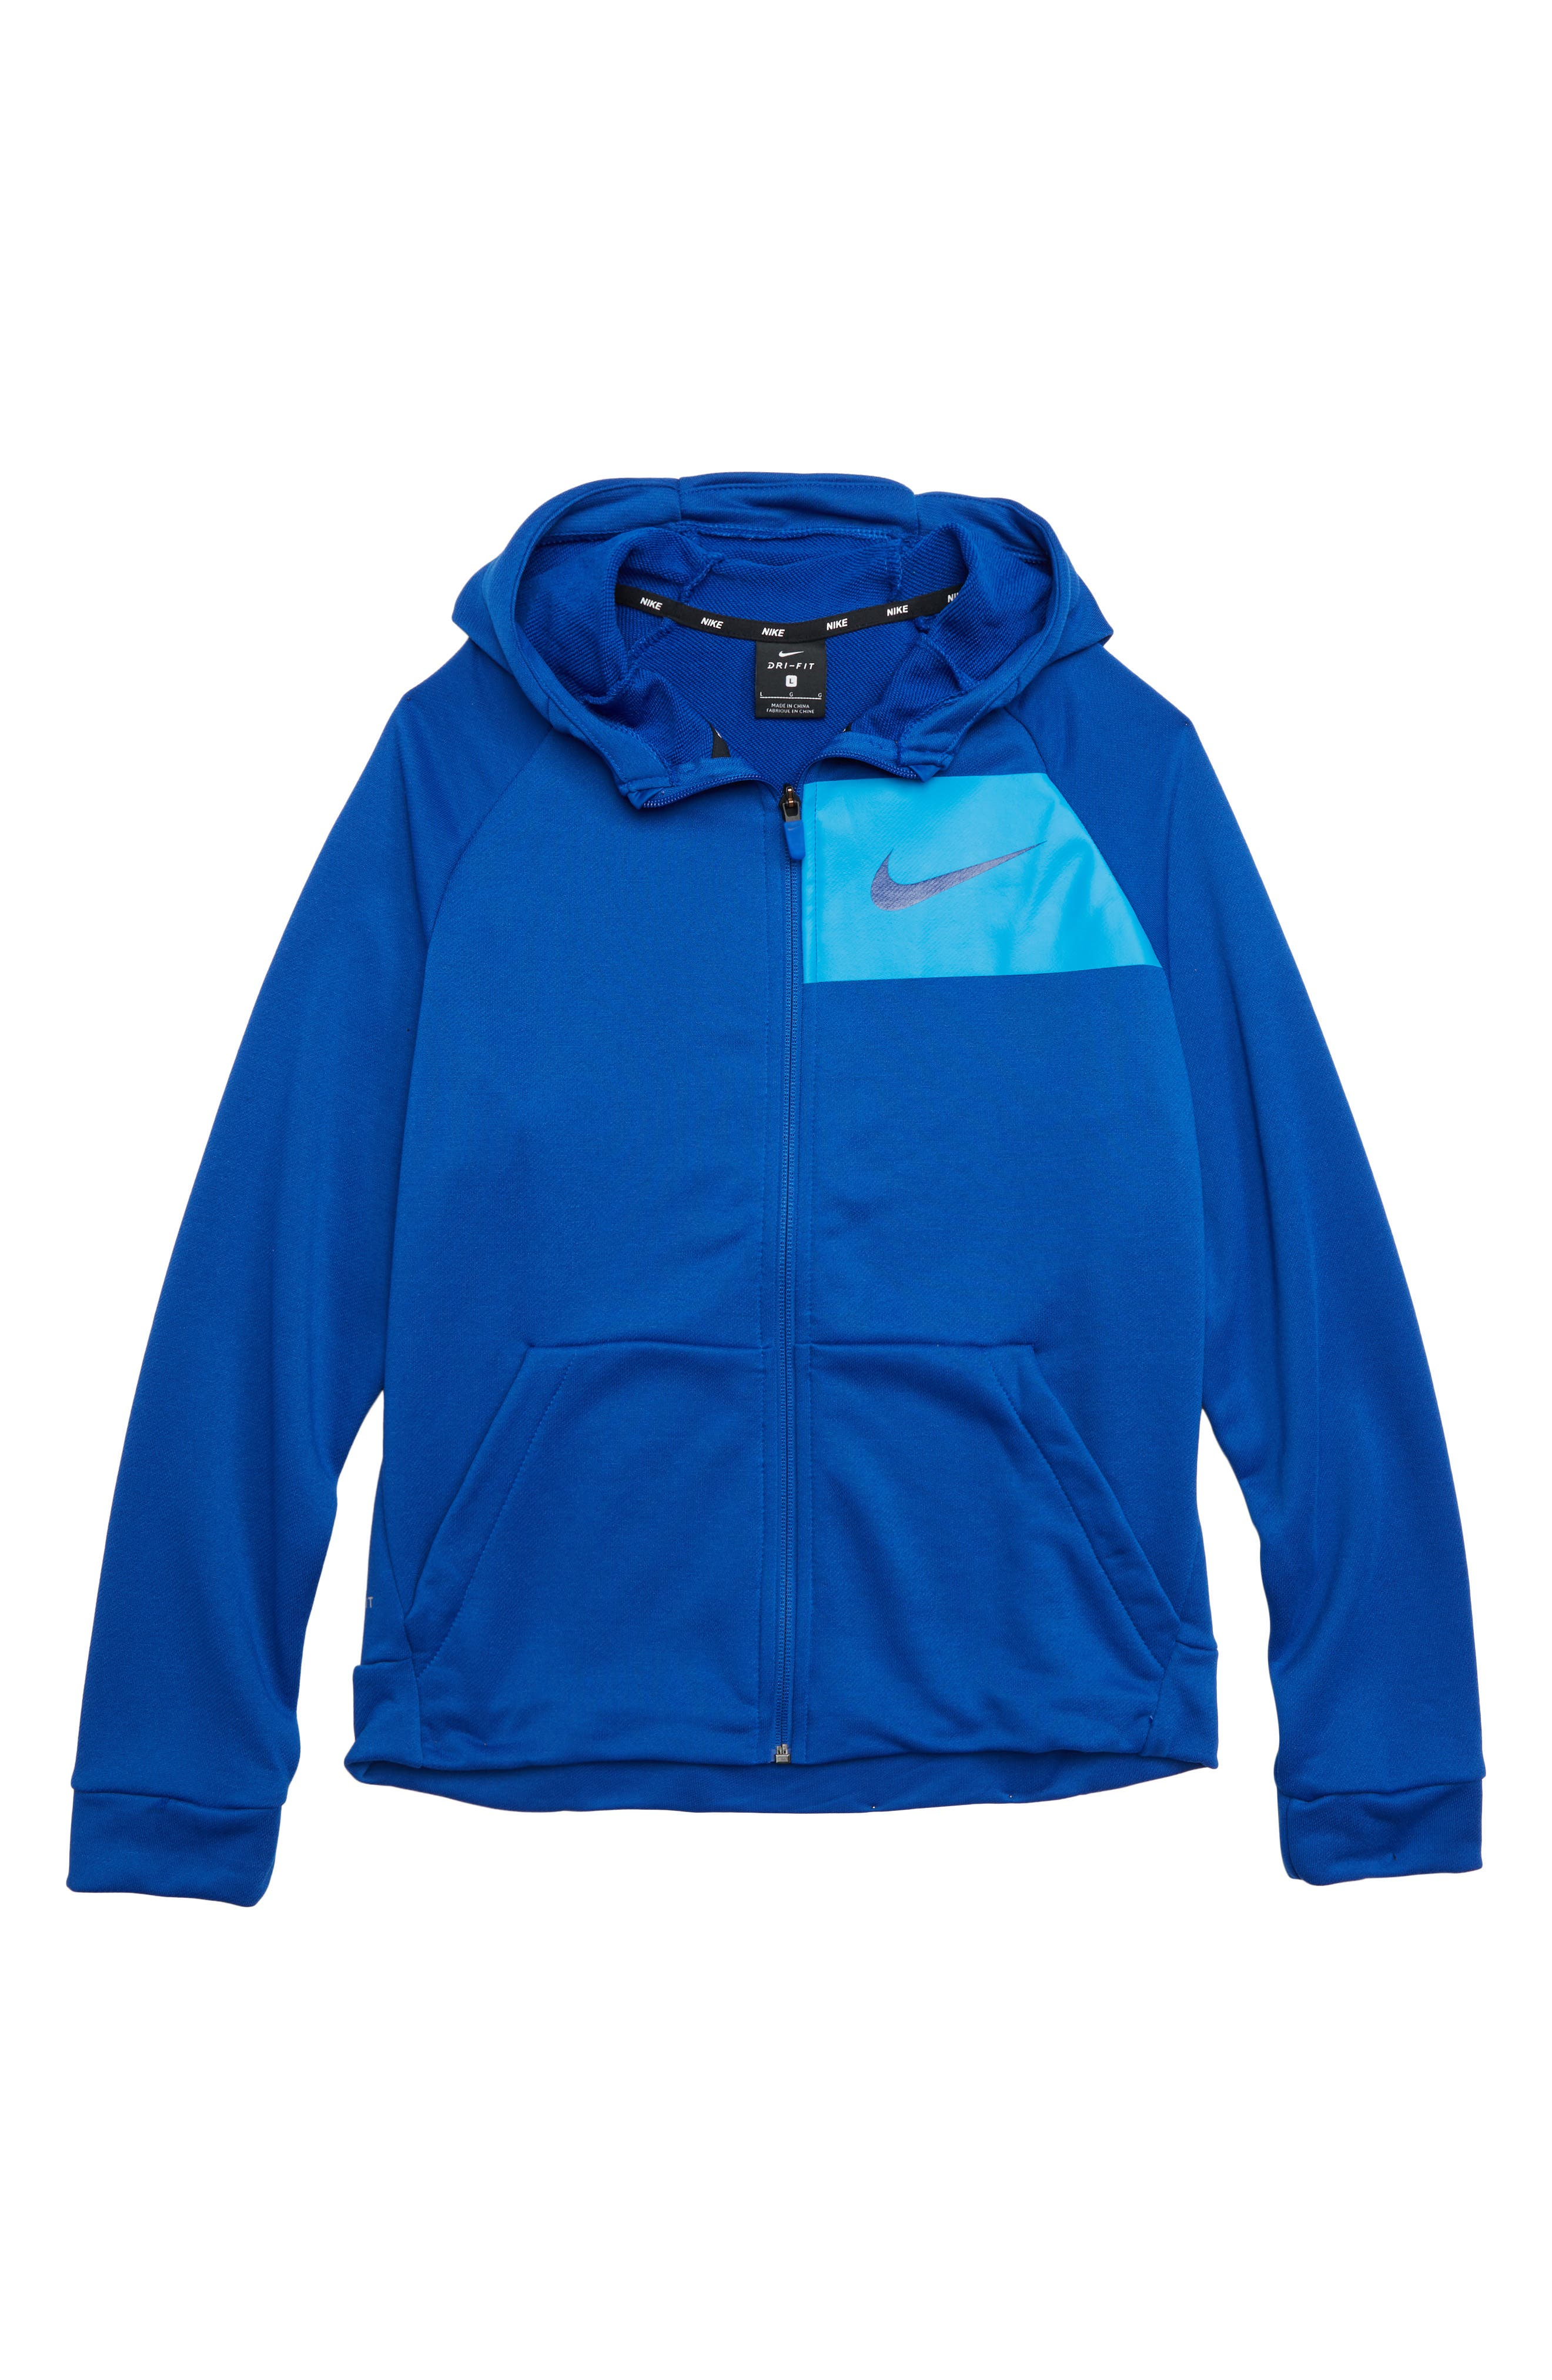 Dry Full Zip Hoodie,                             Main thumbnail 1, color,                             GAME ROYAL/ BLUE HERO